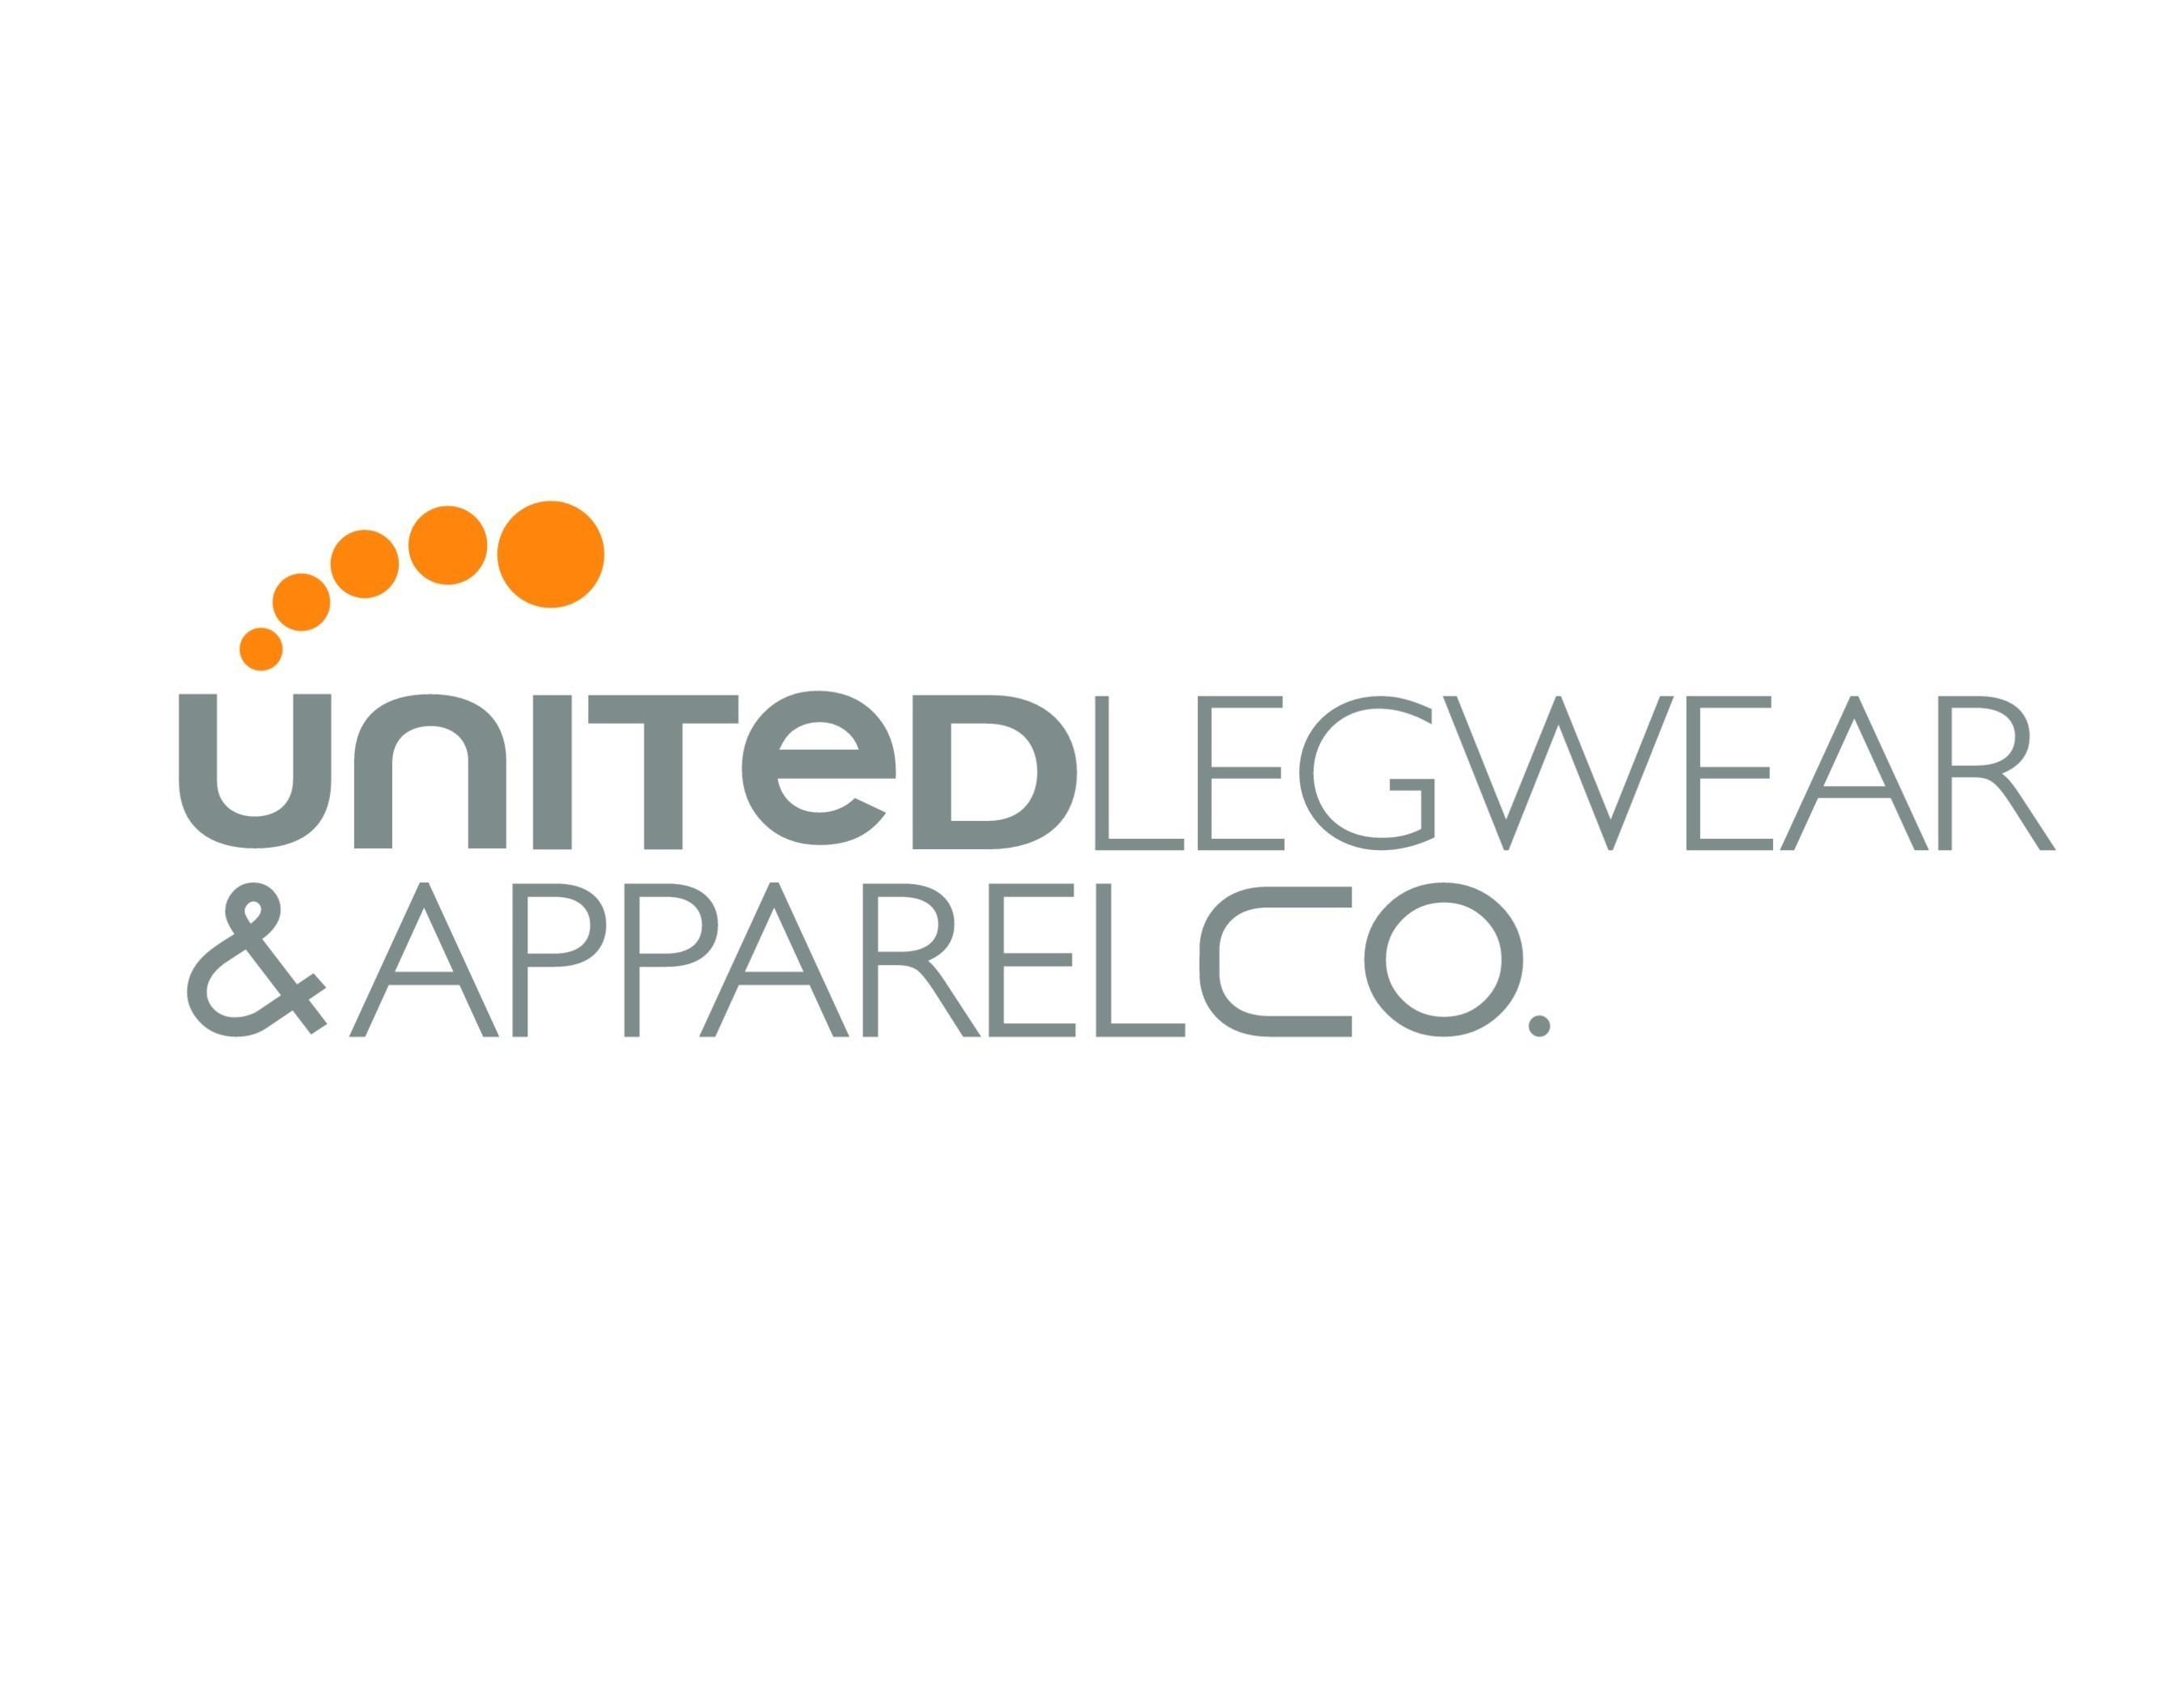 United Legwear & Apparel Co. use eBridge Connections' Universal Integration Platform to Automate Data Between Their Fun Socks Shopify Store and Their ERP